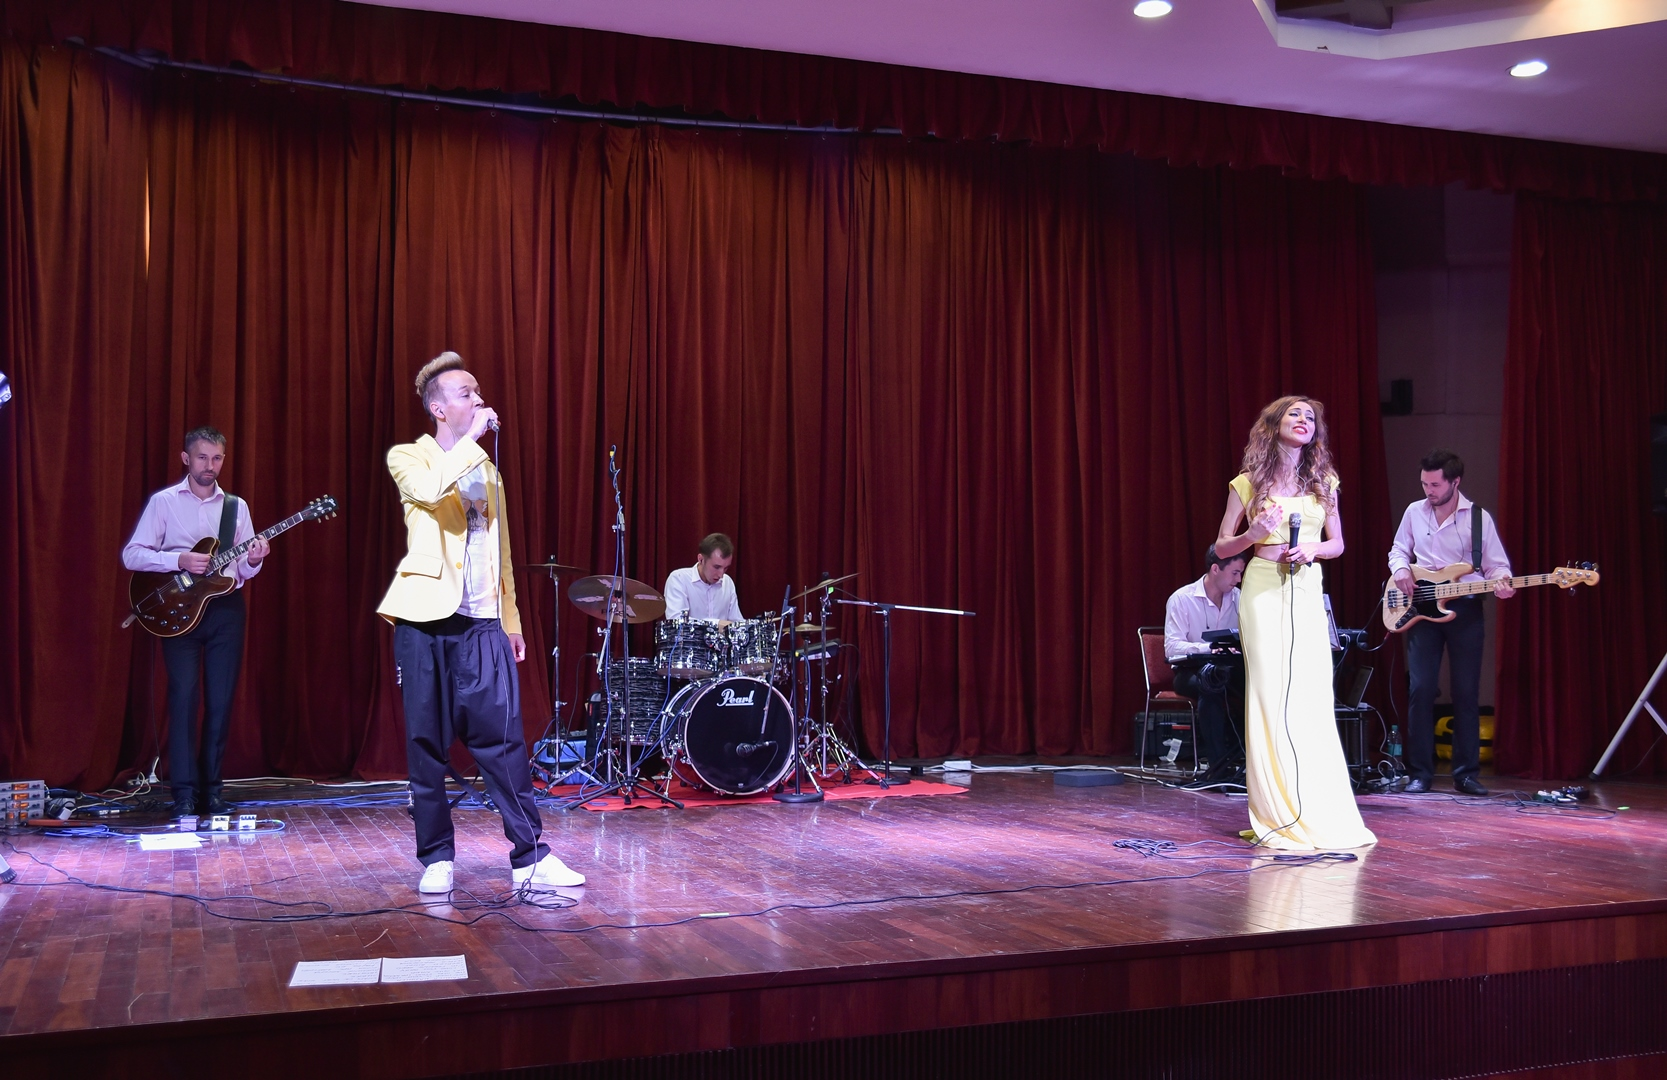 The Luxury Band from Moscow performed at the RCSC on June 8.